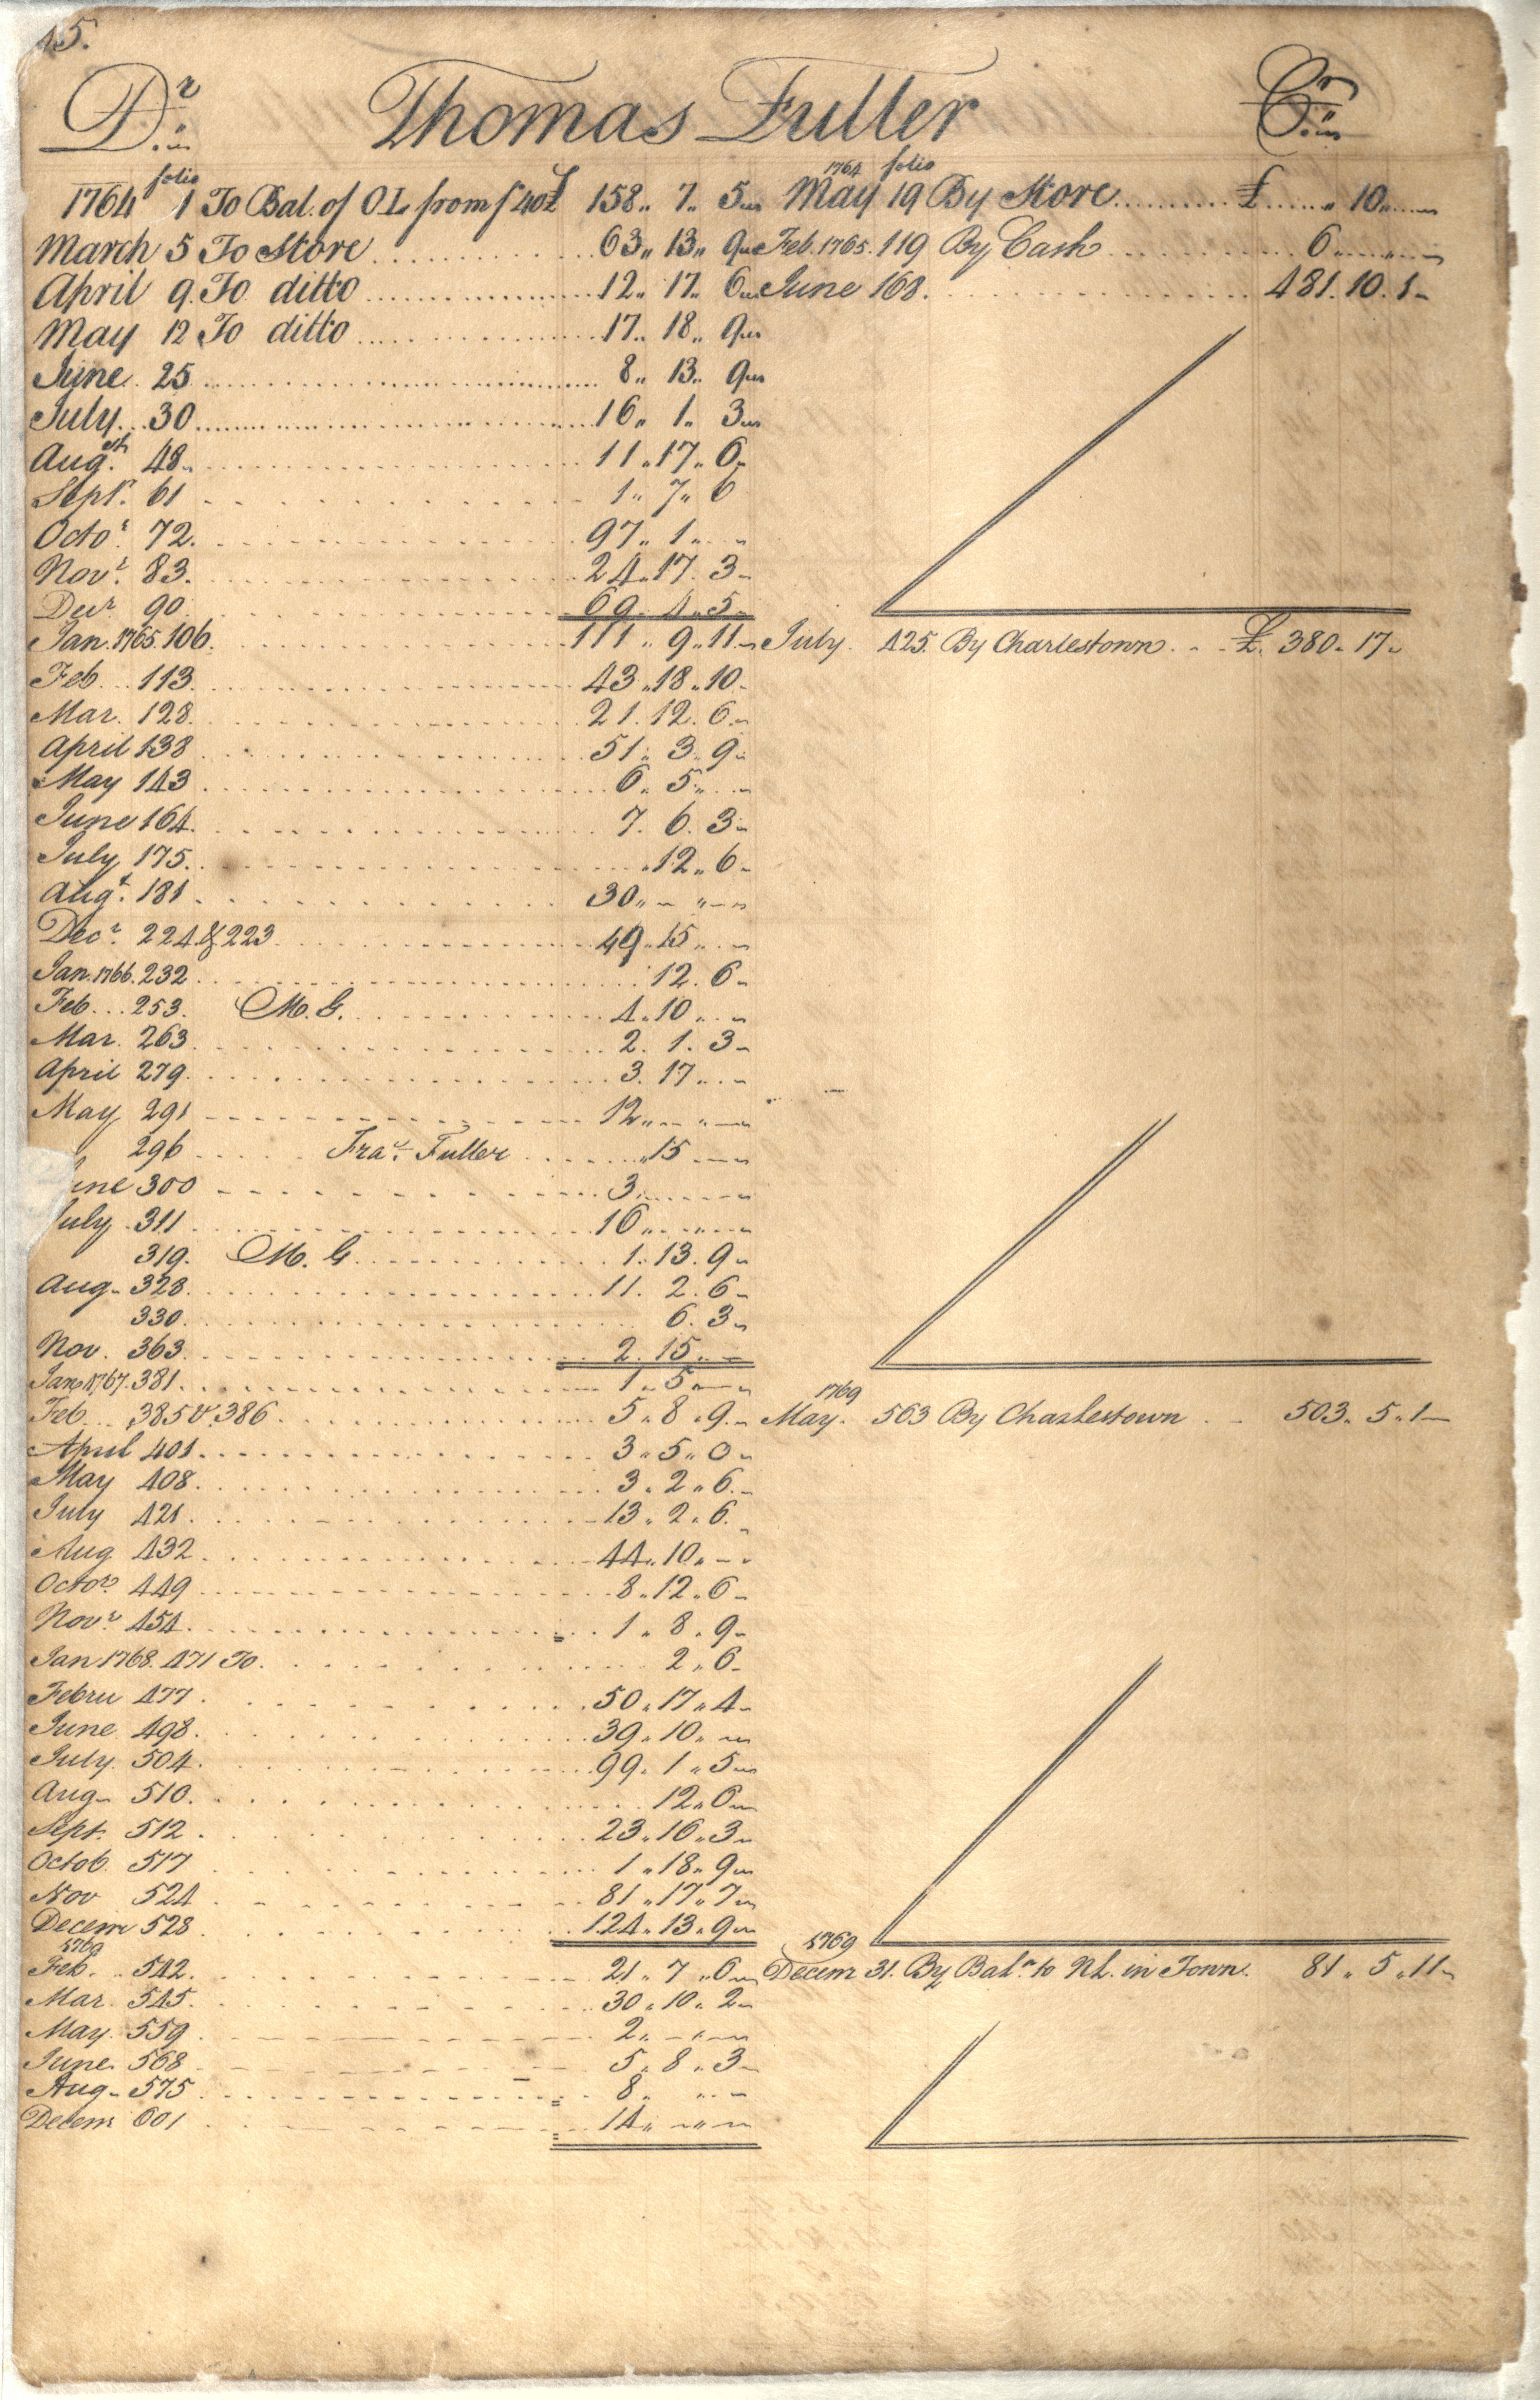 Plowden Weston's Business Ledger, page 85